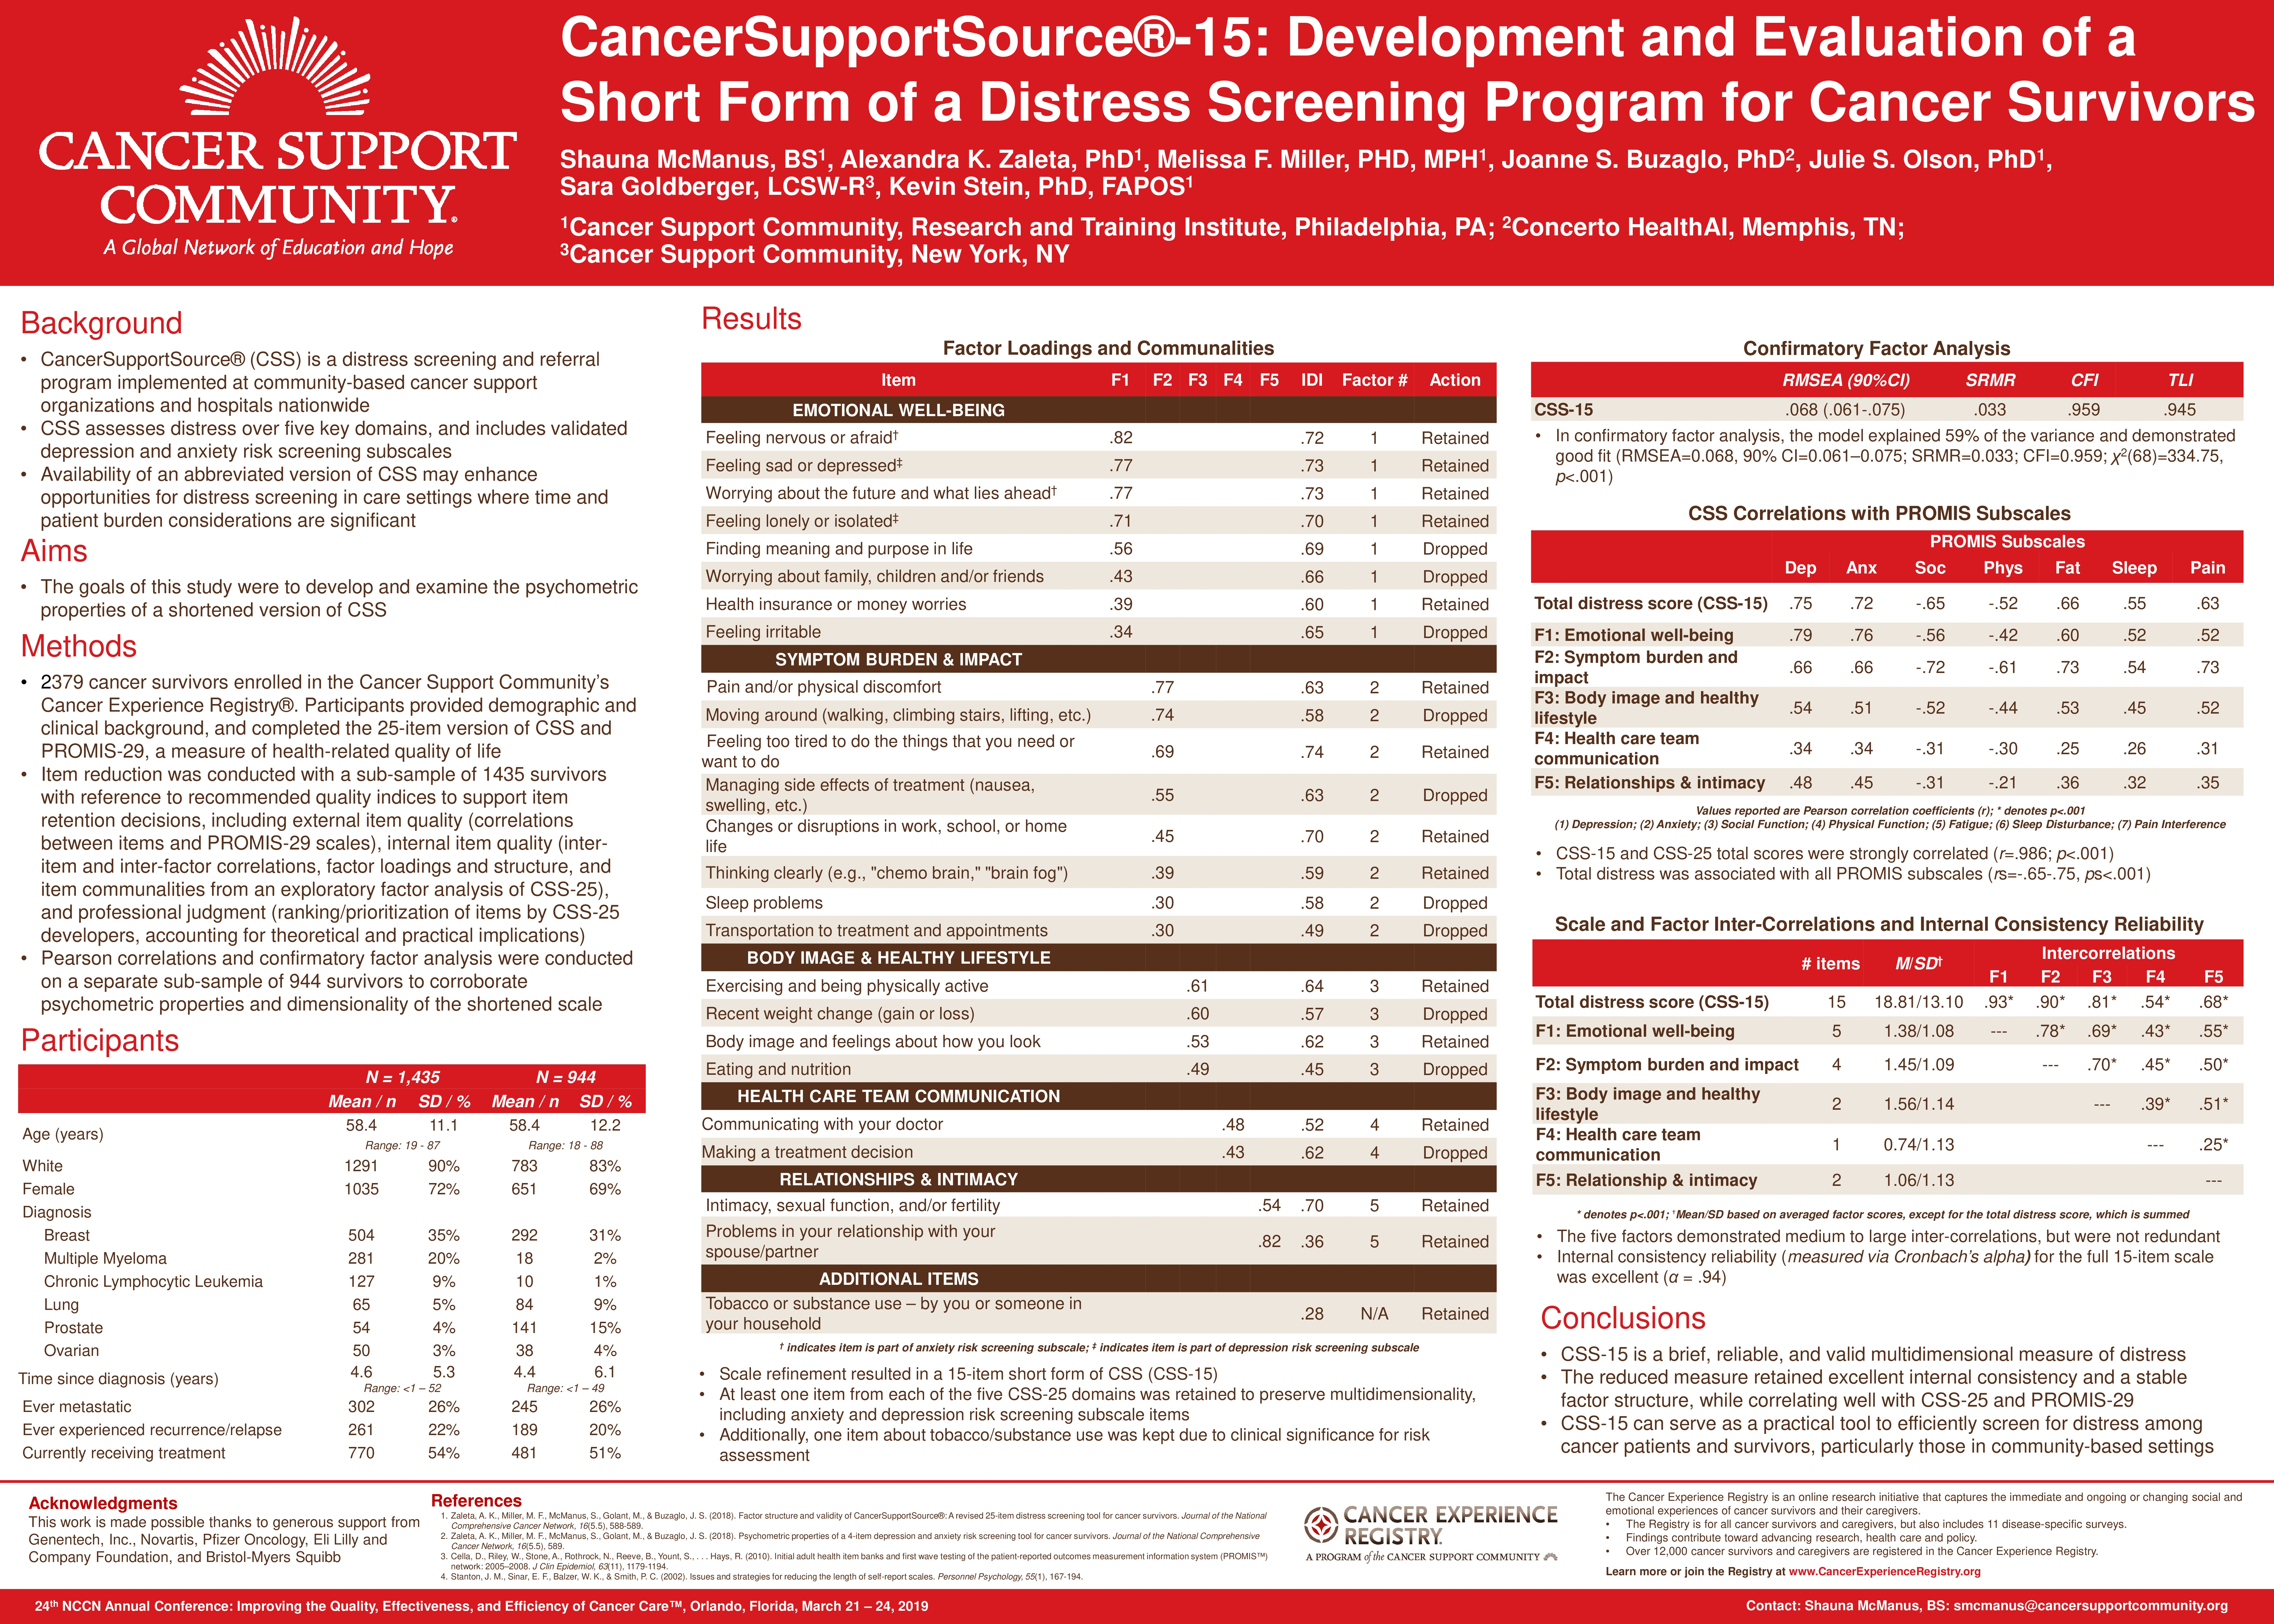 CancerSupportSource®-15: Development and Evaluation of a Short Form of a Distress Screening Program for Cancer Survivors